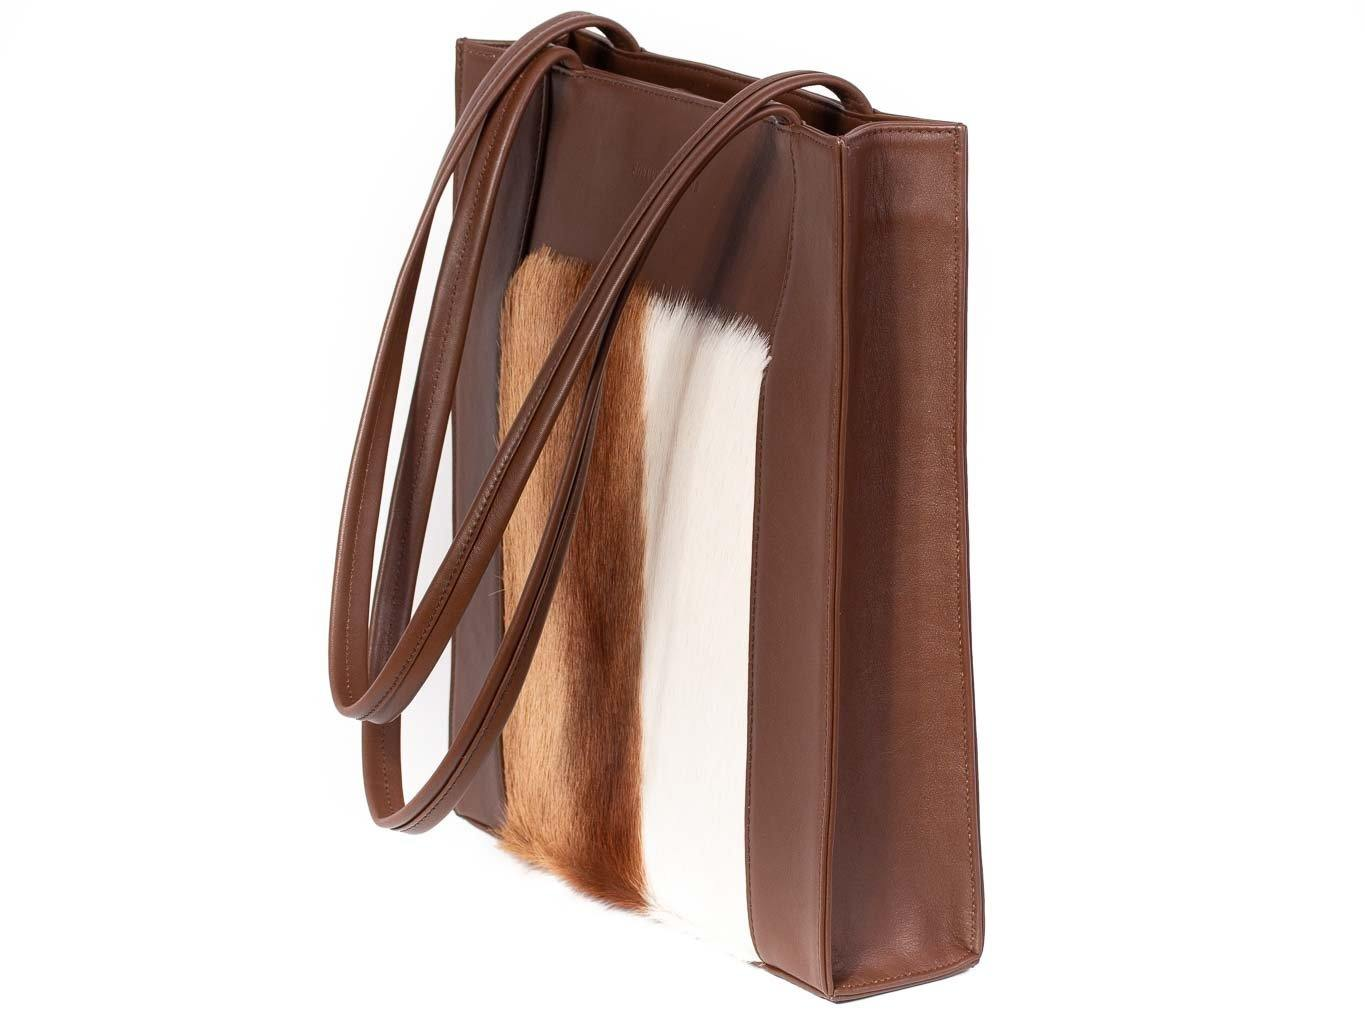 Tote Springbok Handbag in Cocoa Brown with a stripe feature by Sherene Melinda front handle